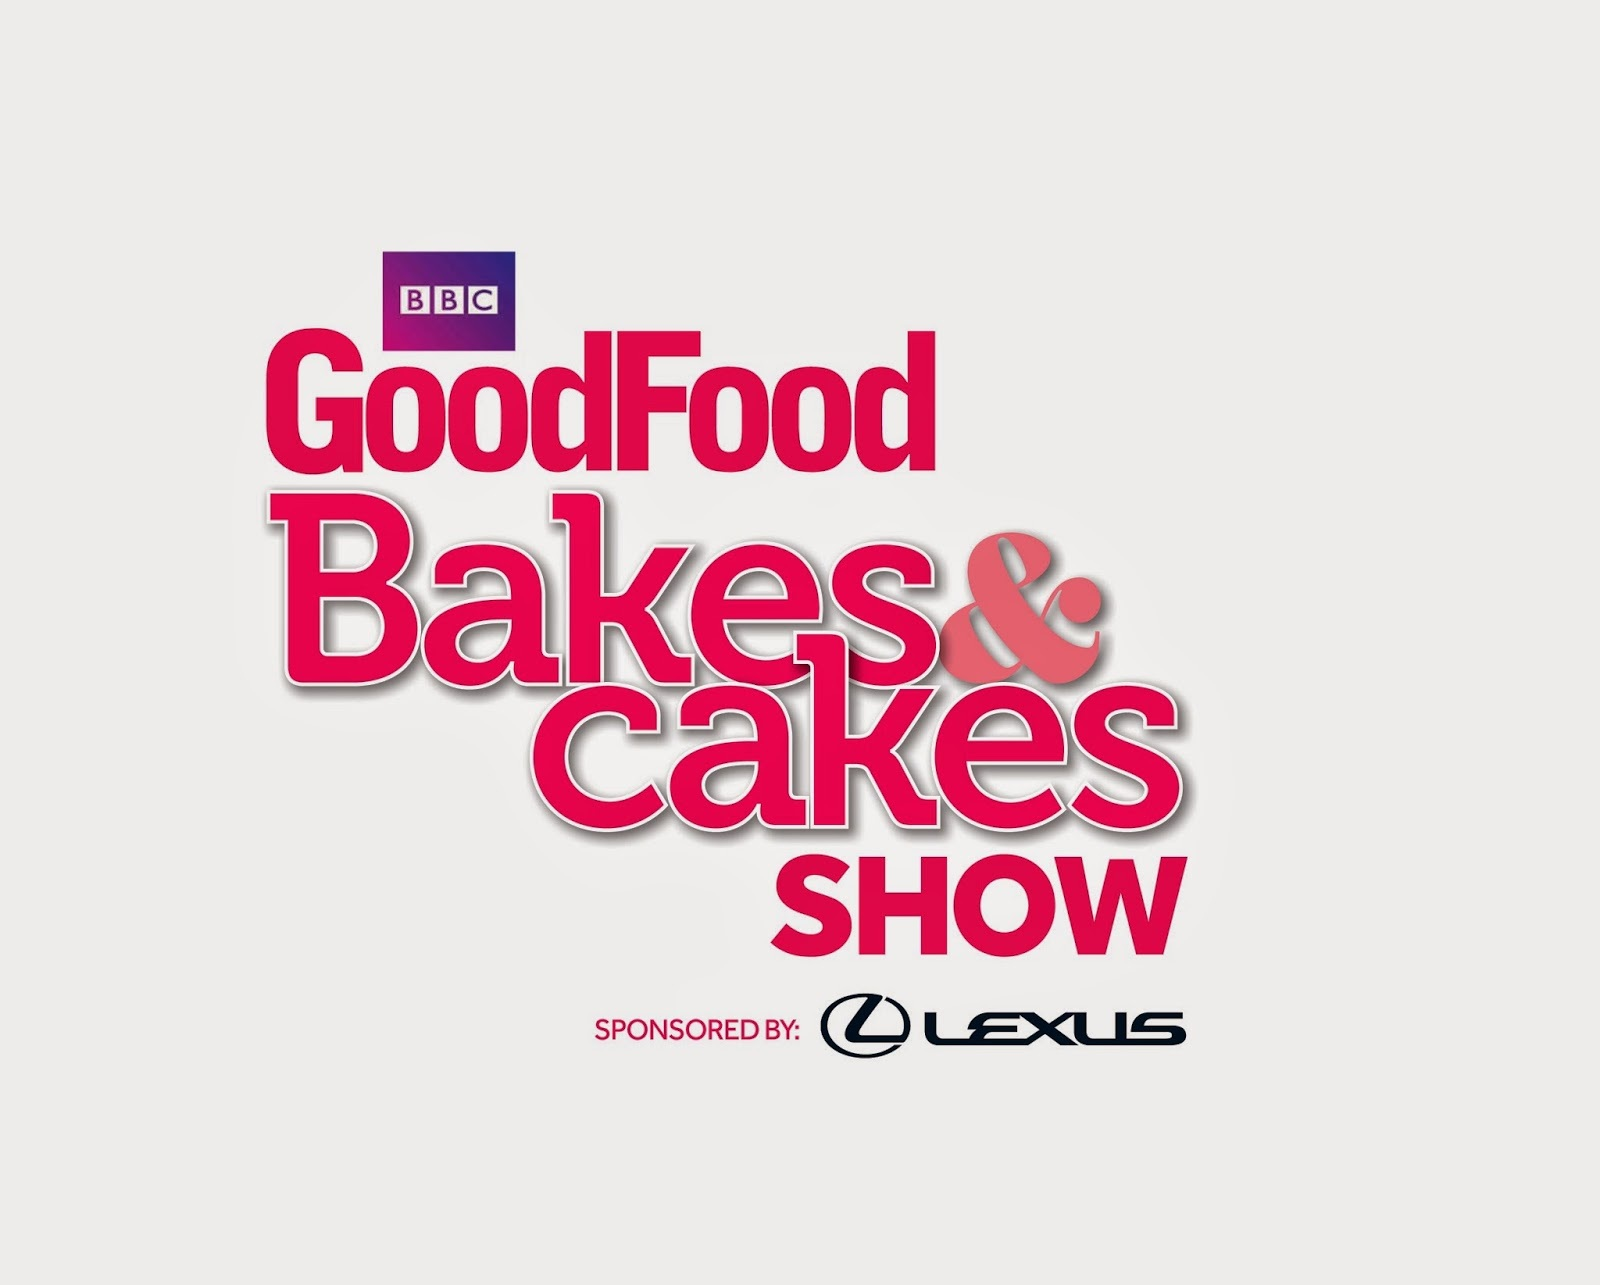 20% off Ticket Offer BBC Good Food Bakes & Cakes Show